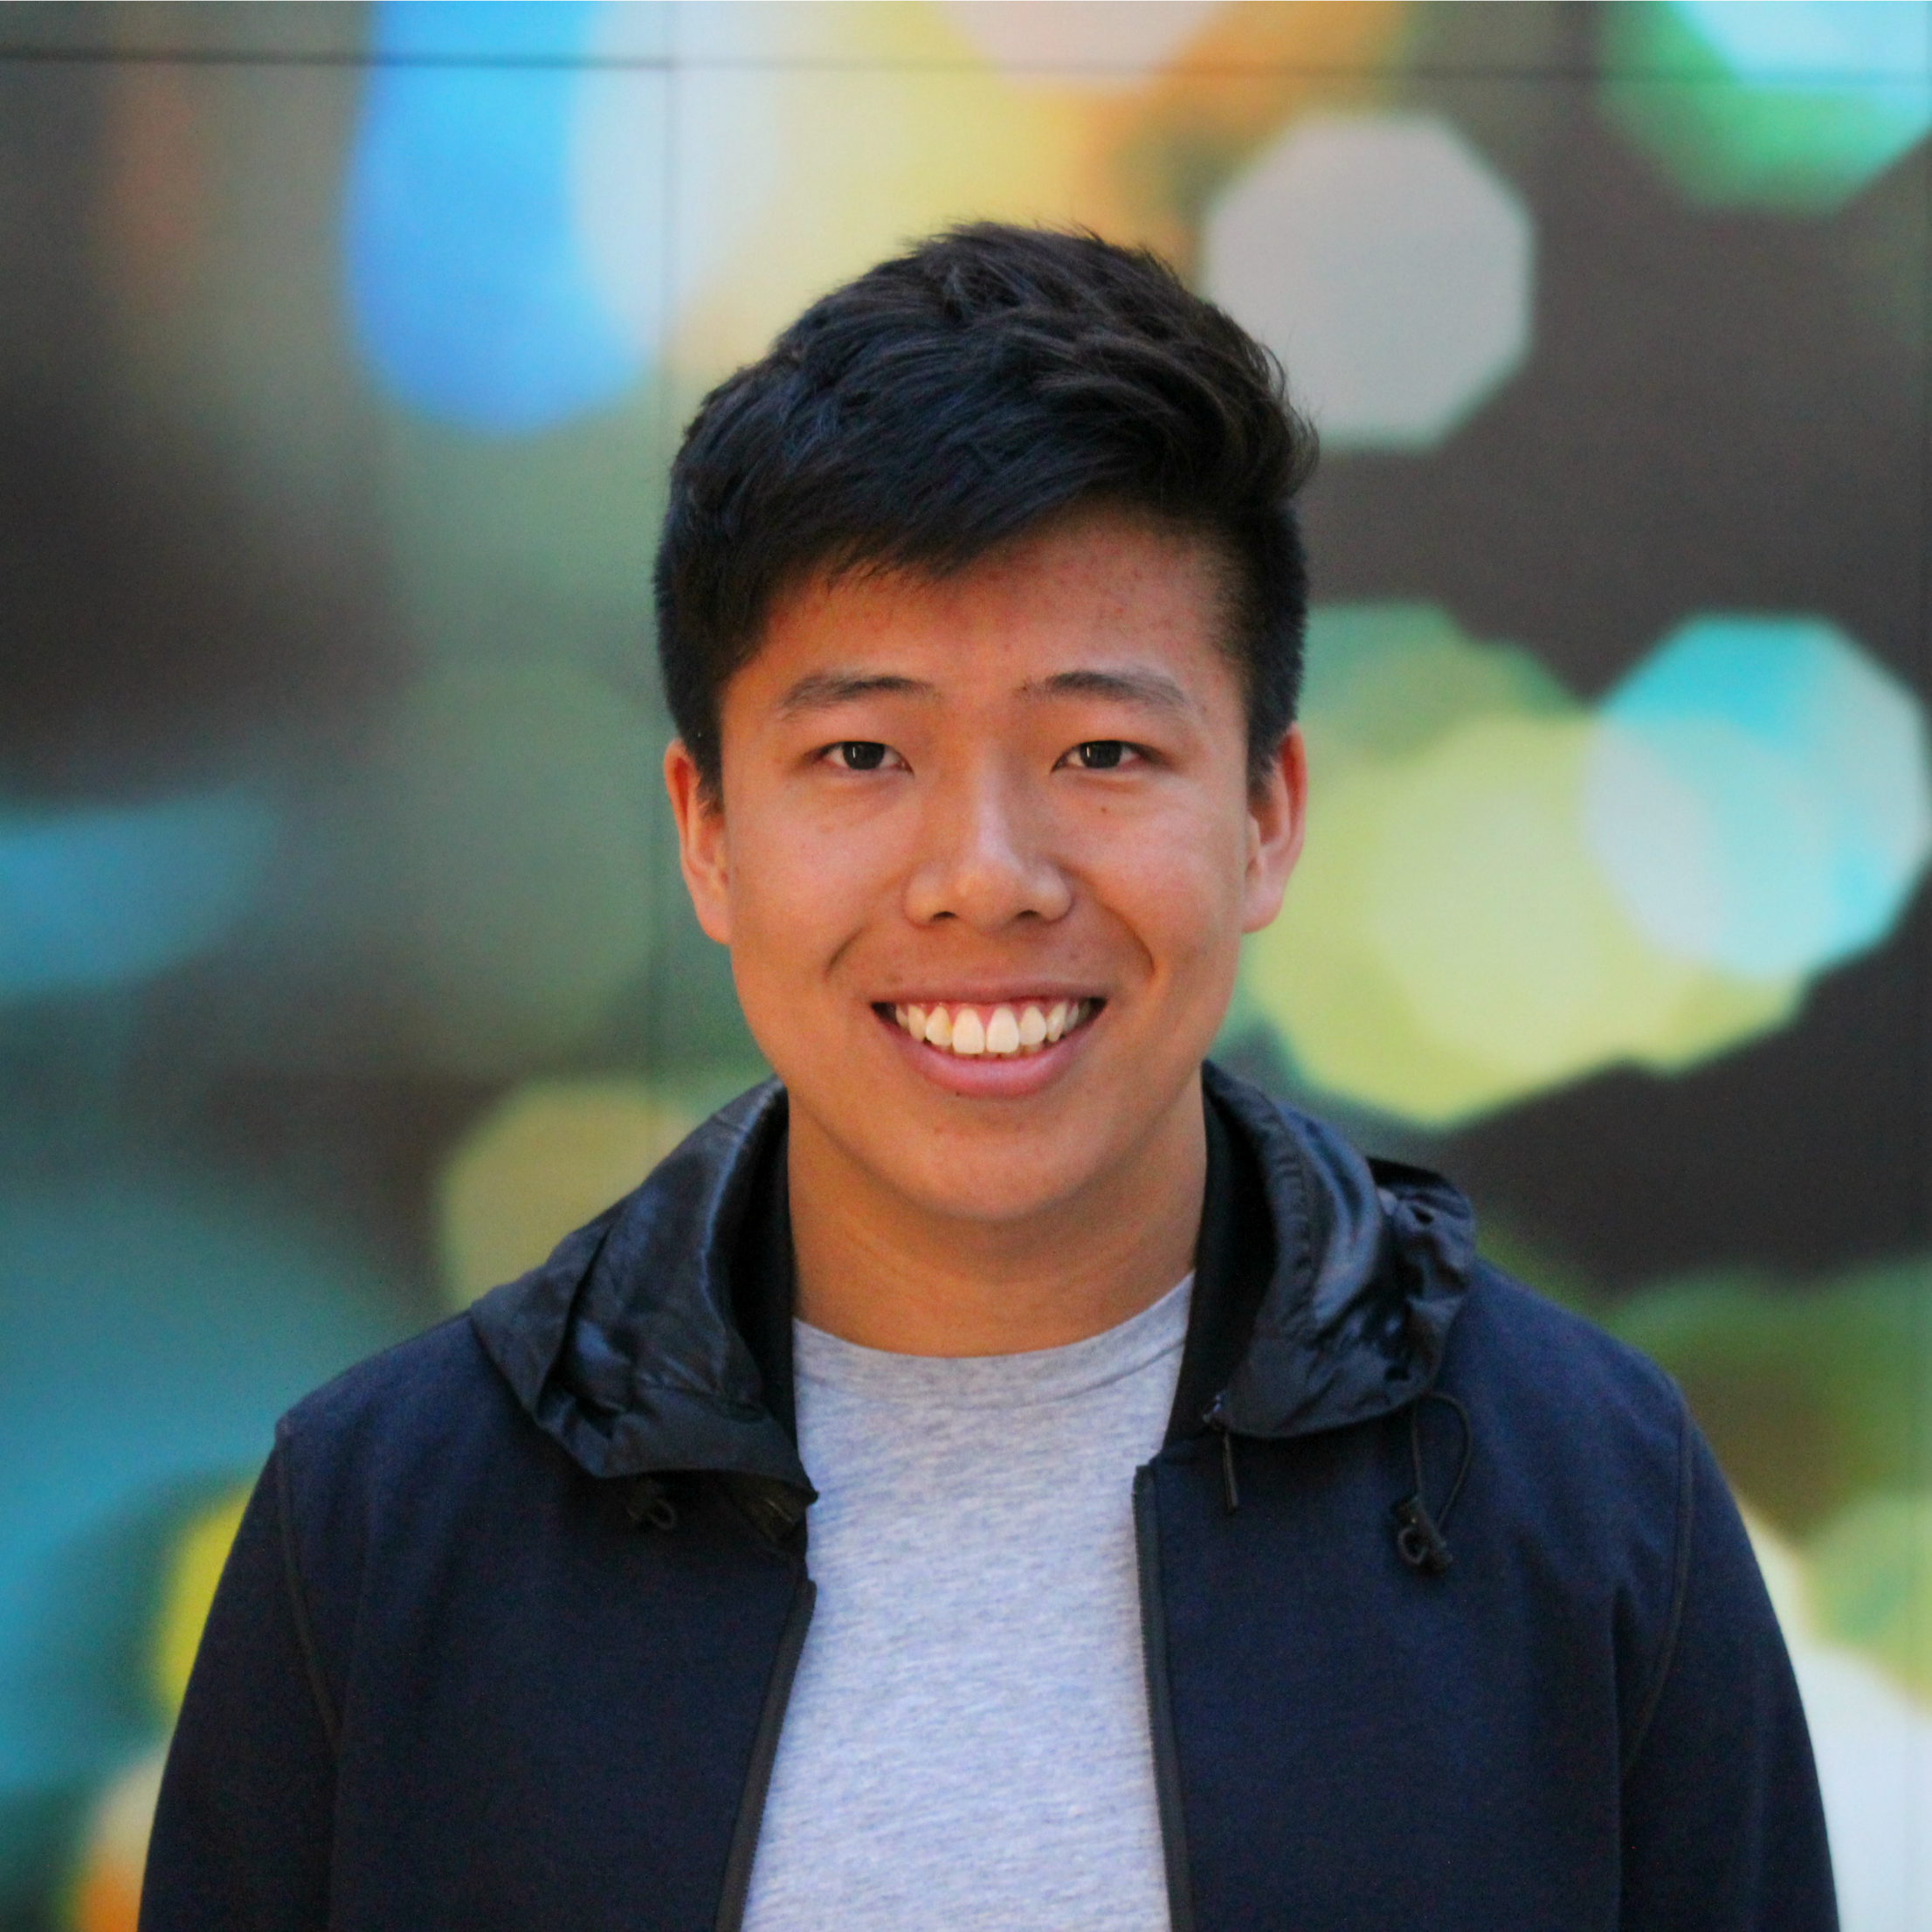 Harald Tam - Treasurer   Harald is a Sophomore pursuing a degree in Finance at New York University. He first broke onto the entrepreneurial scene back in 2011 when he and his team were sent to Hong Kong to pitch their virtual reality start-up as part of a global innovation and entrepreneurship student challenge. Despite growing up in the metropolitan city of Singapore, Harald also has a strong affinity for nature; he enjoys a wide variety of outdoors activities that range from the likes of whitewater rafting to abseiling.